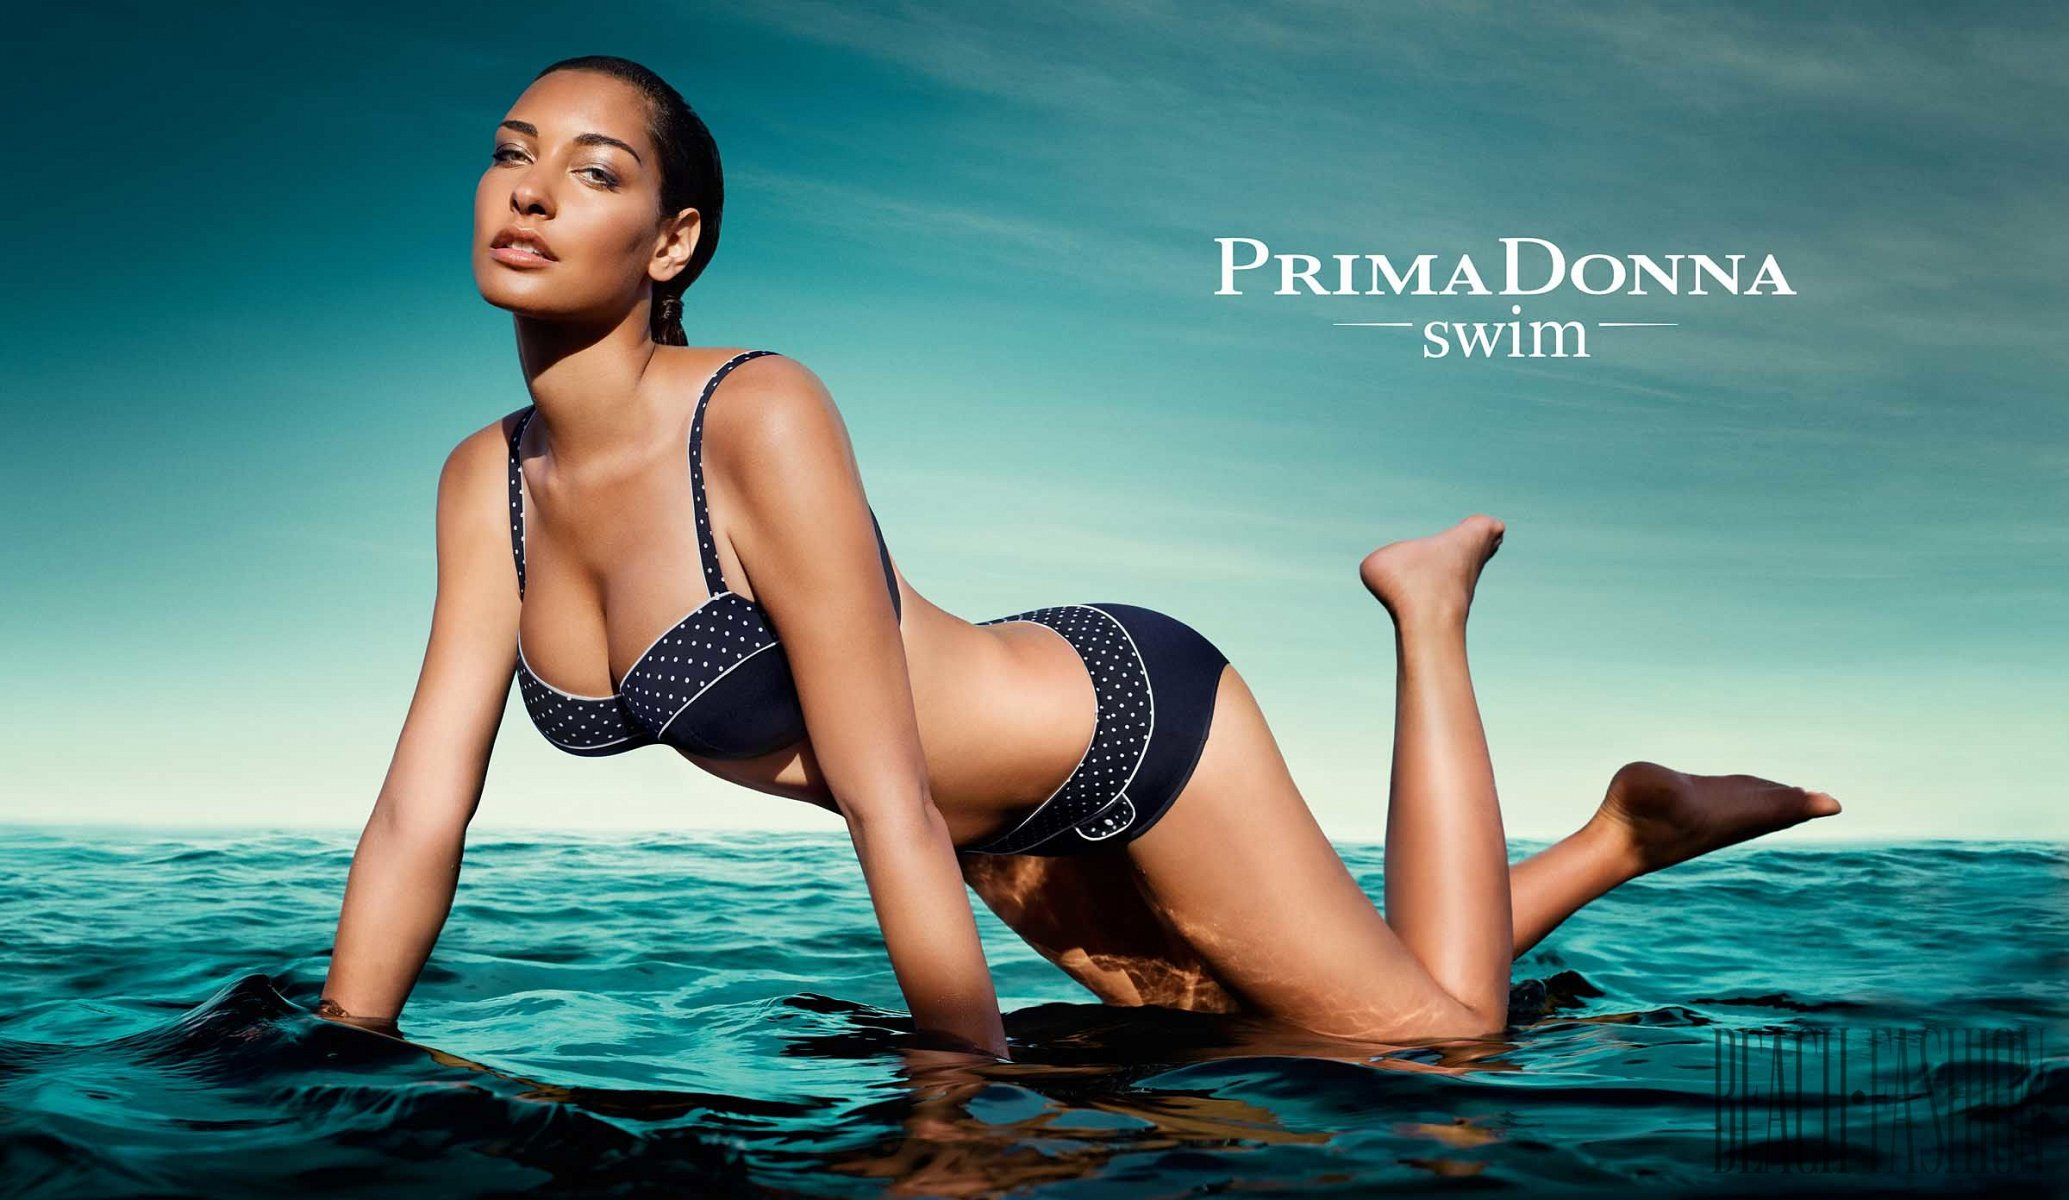 Primadonna 2014 collection - Swimwear - 6